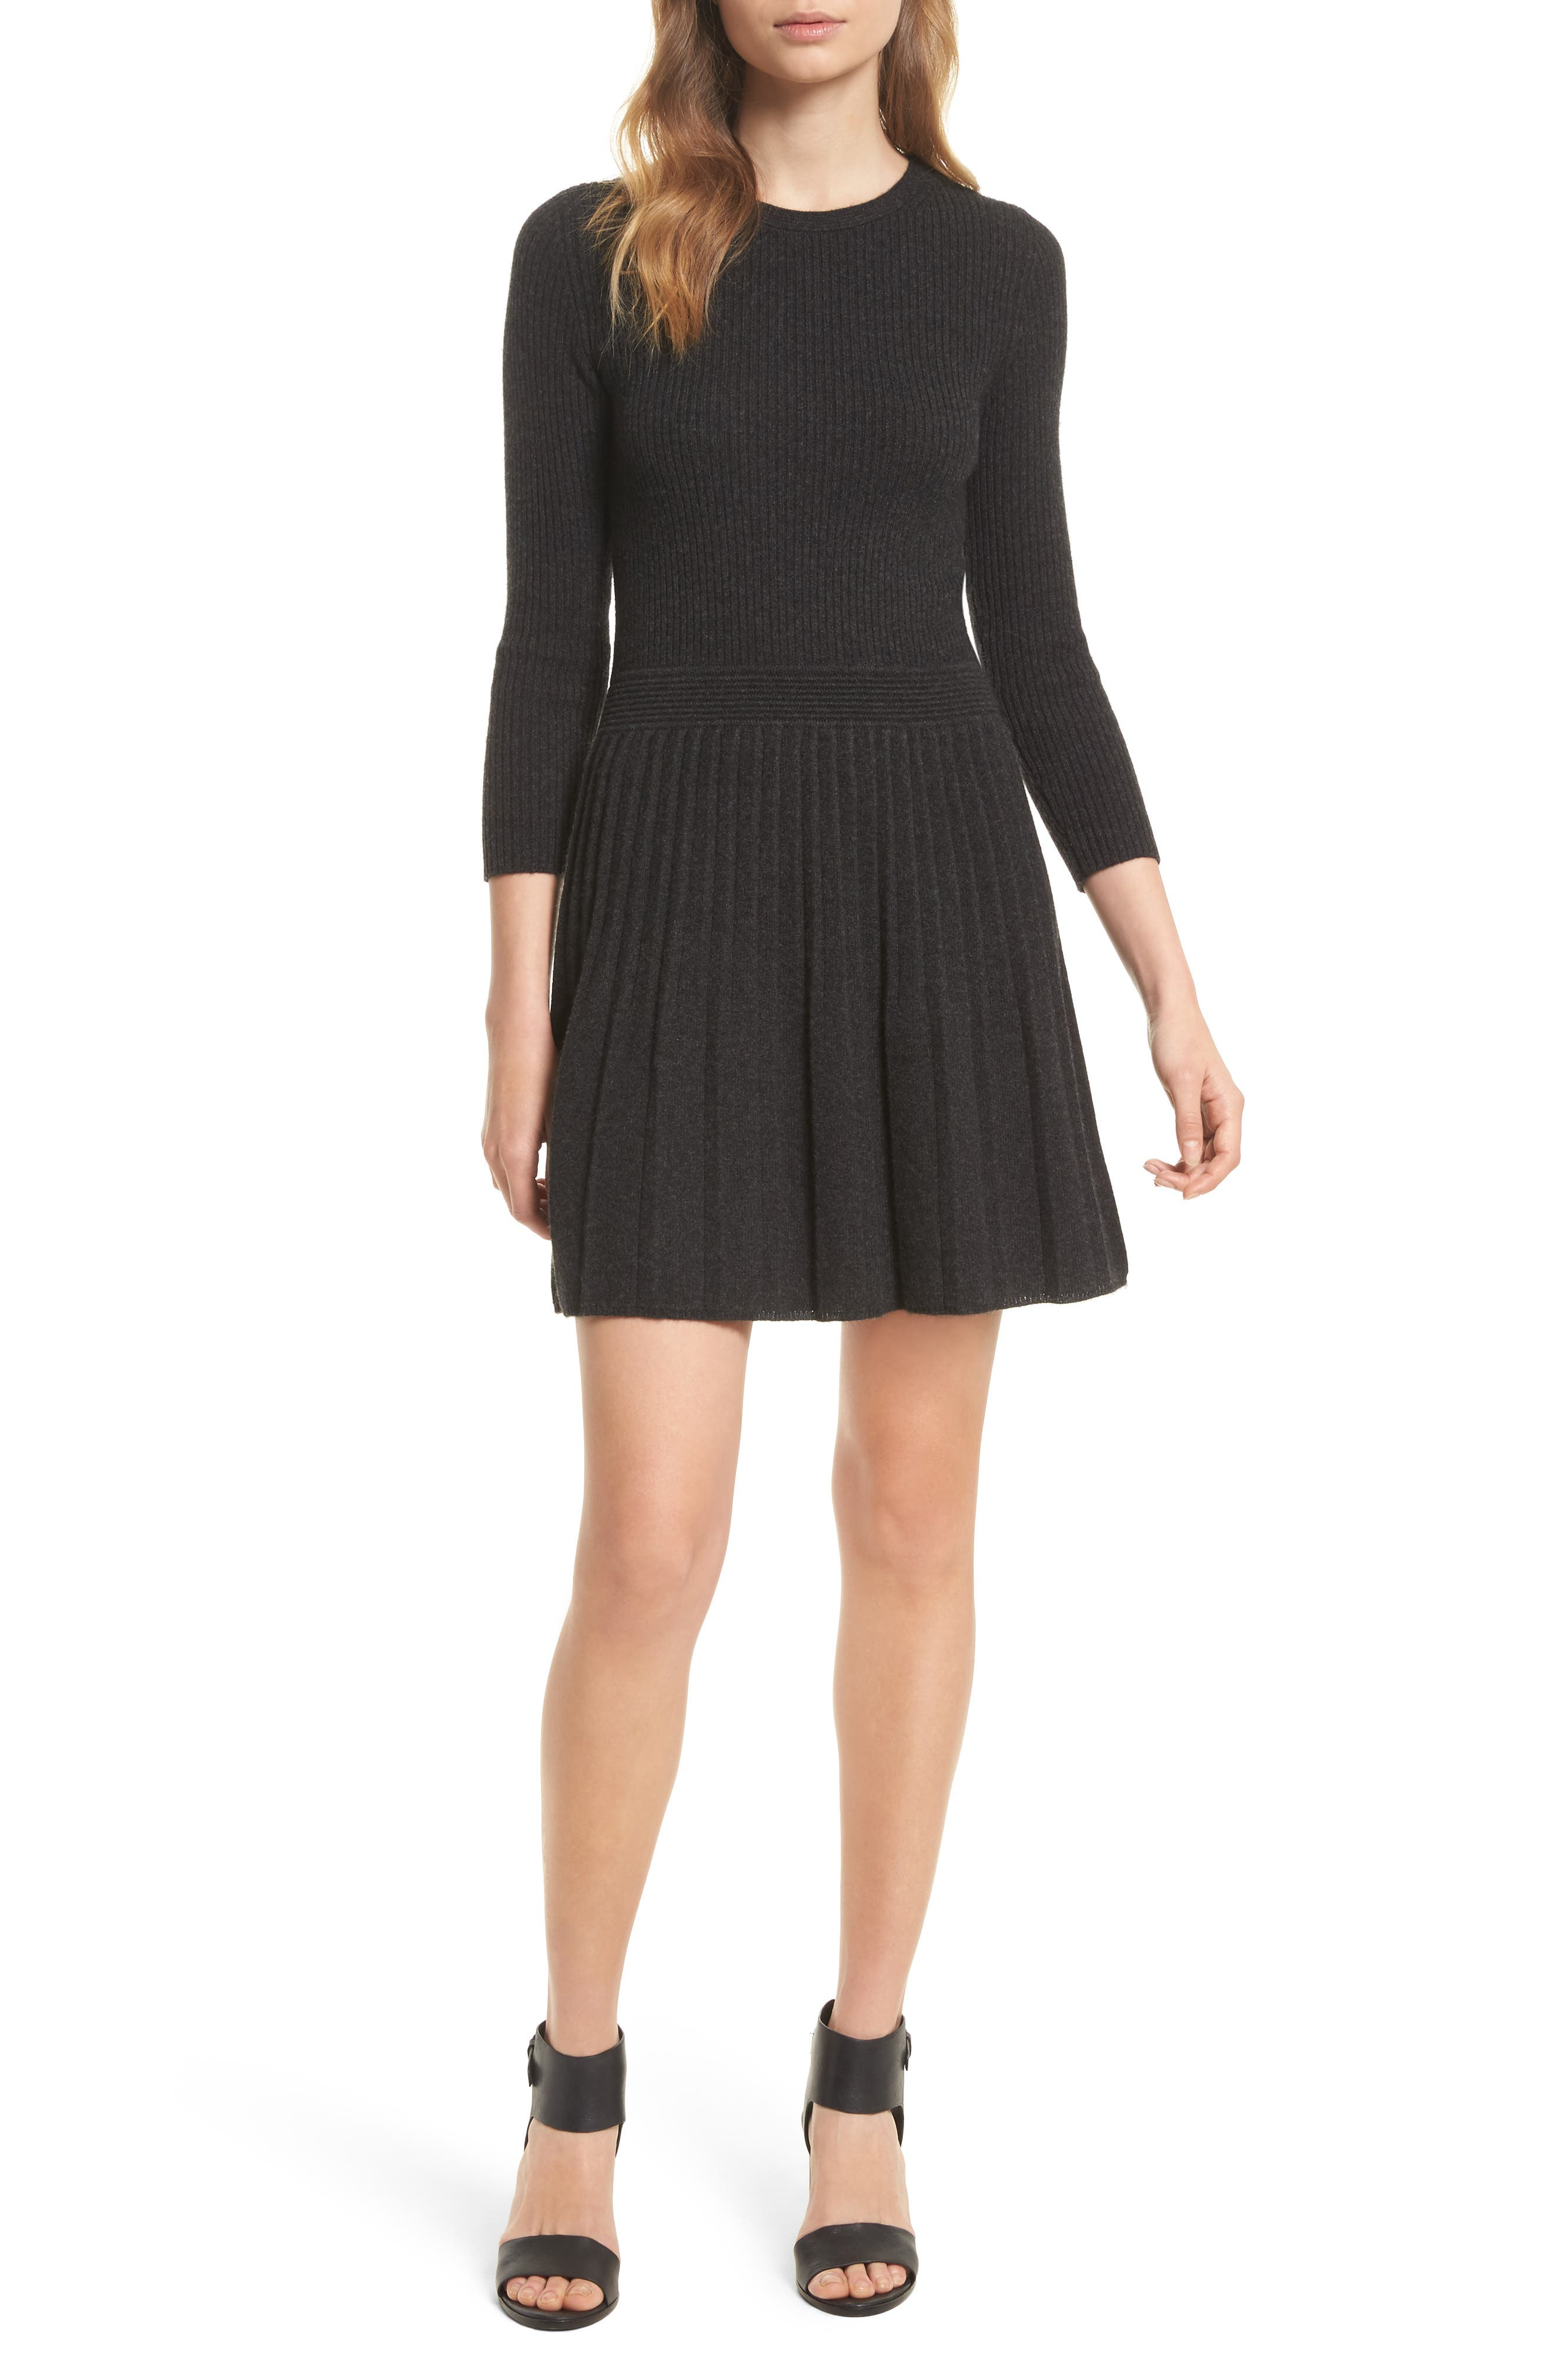 Peronne B Knit Wool & Cashmere Fit & Flare Dress,                         Main,                         color, 071